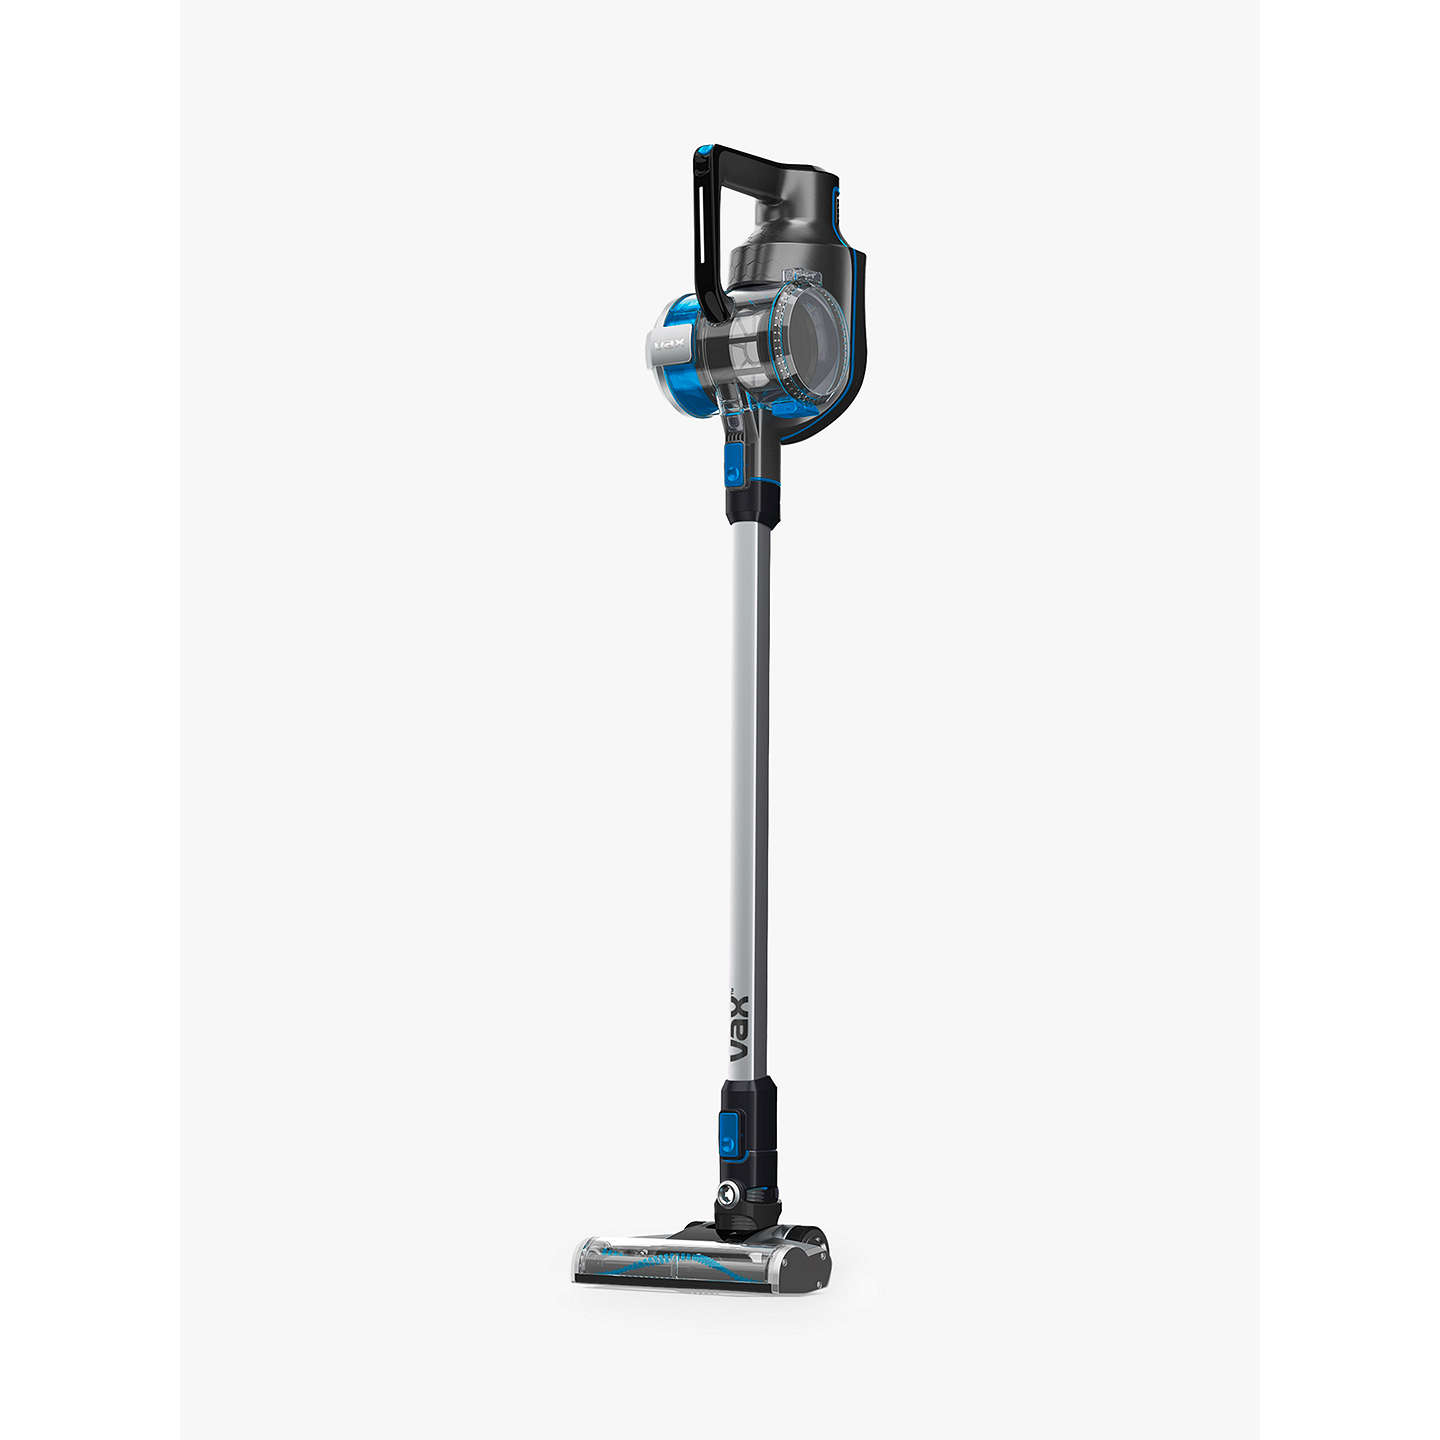 BuyVax Blade 32V Cordless Vacuum Cleaner Online At Johnlewis